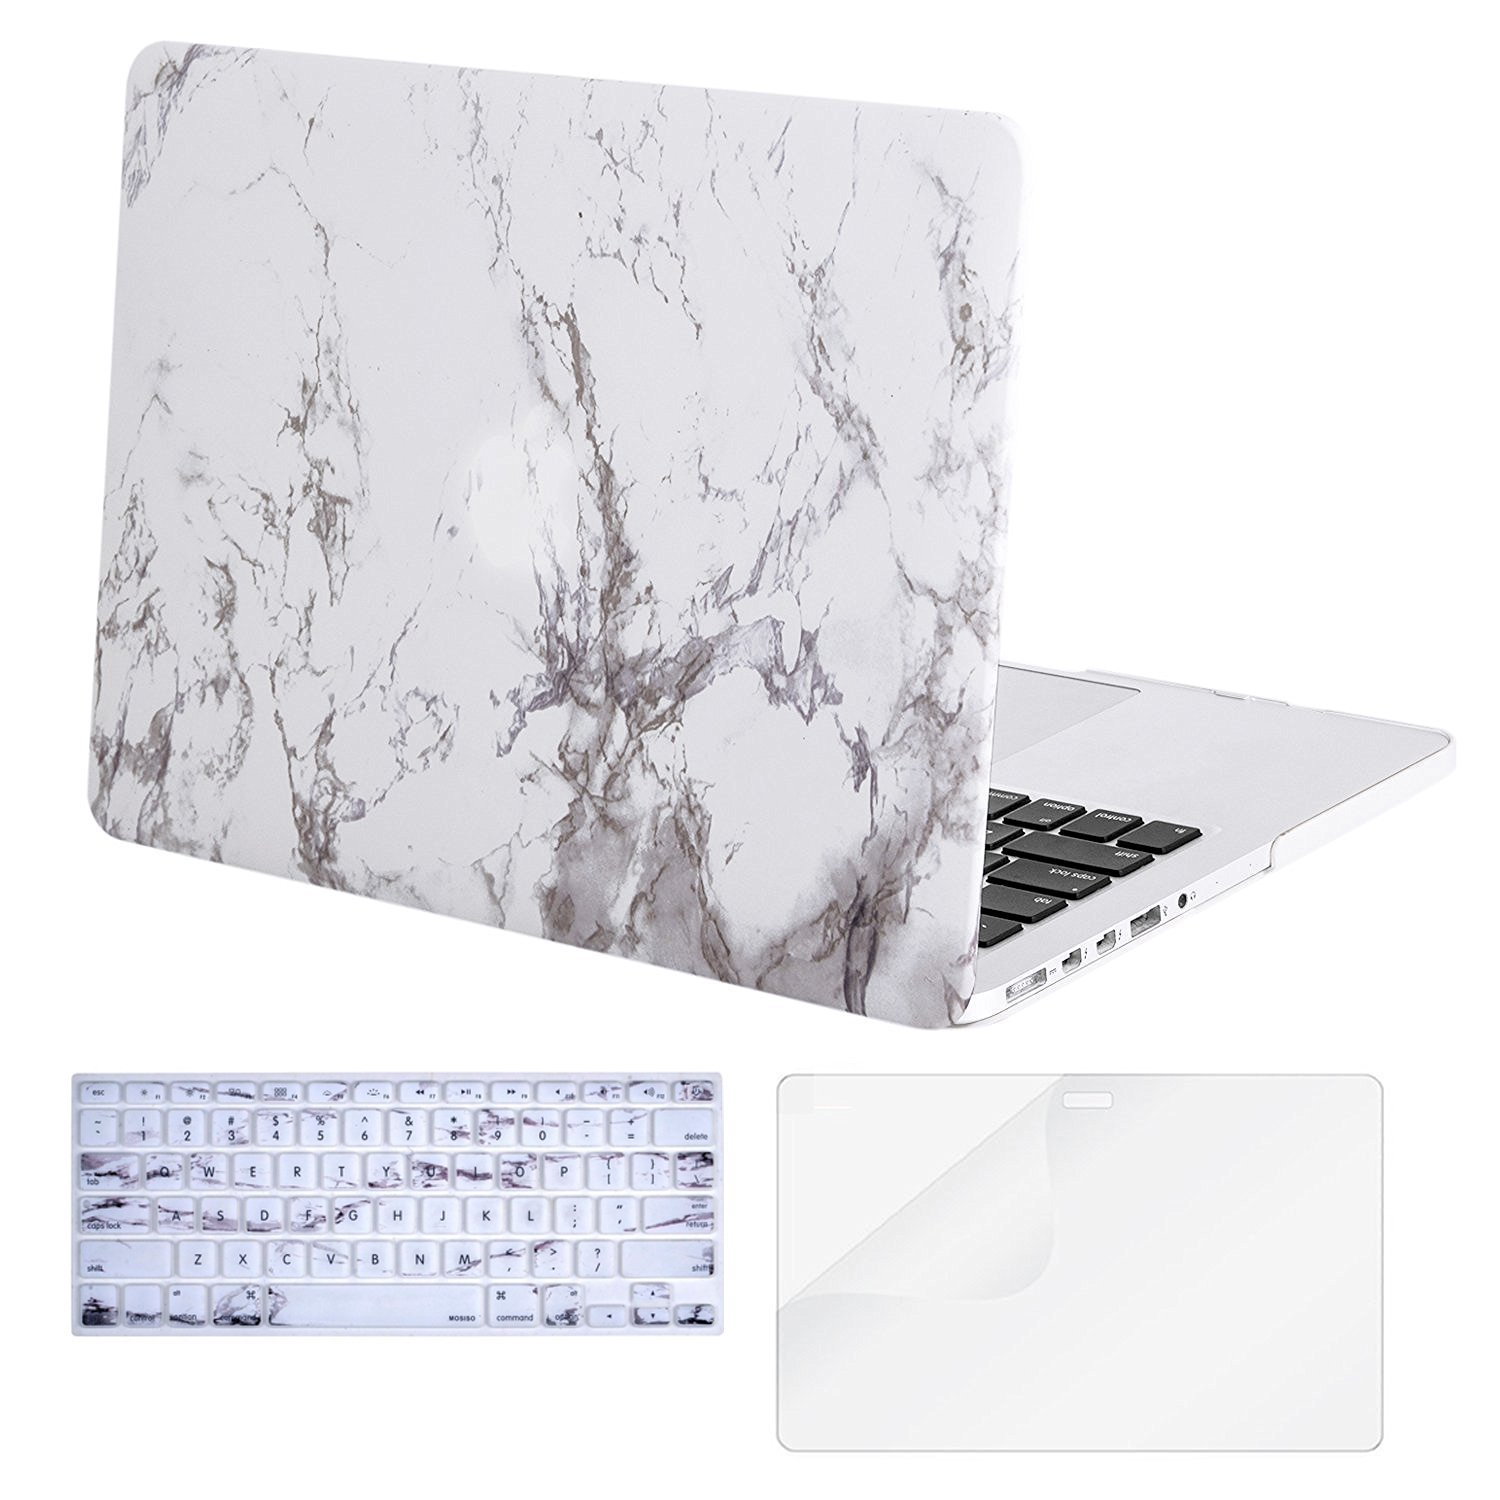 Mosiso Plastic Hard Case with Keyboard Cover with Screen Protector for Macbook Pro Retina 15 Inch (Model: A1398) No CD-ROM, Marble Pattern